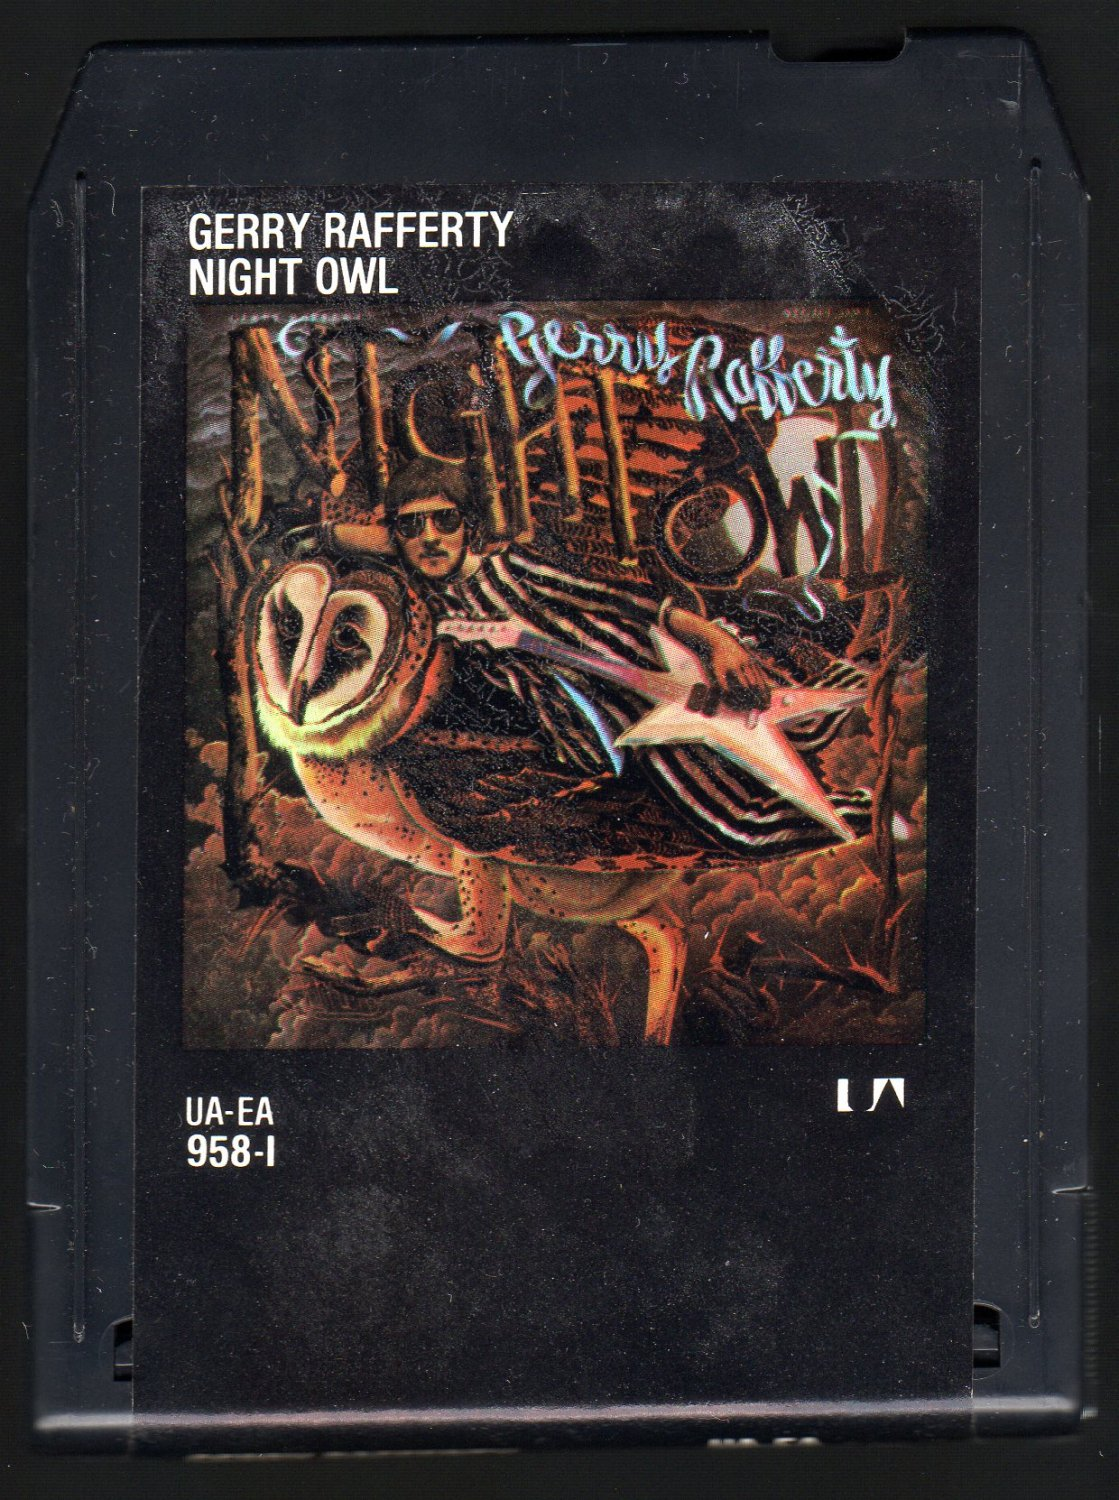 Gerry Rafferty - Night Owl 1979 UA A22 8-TRACK TAPE